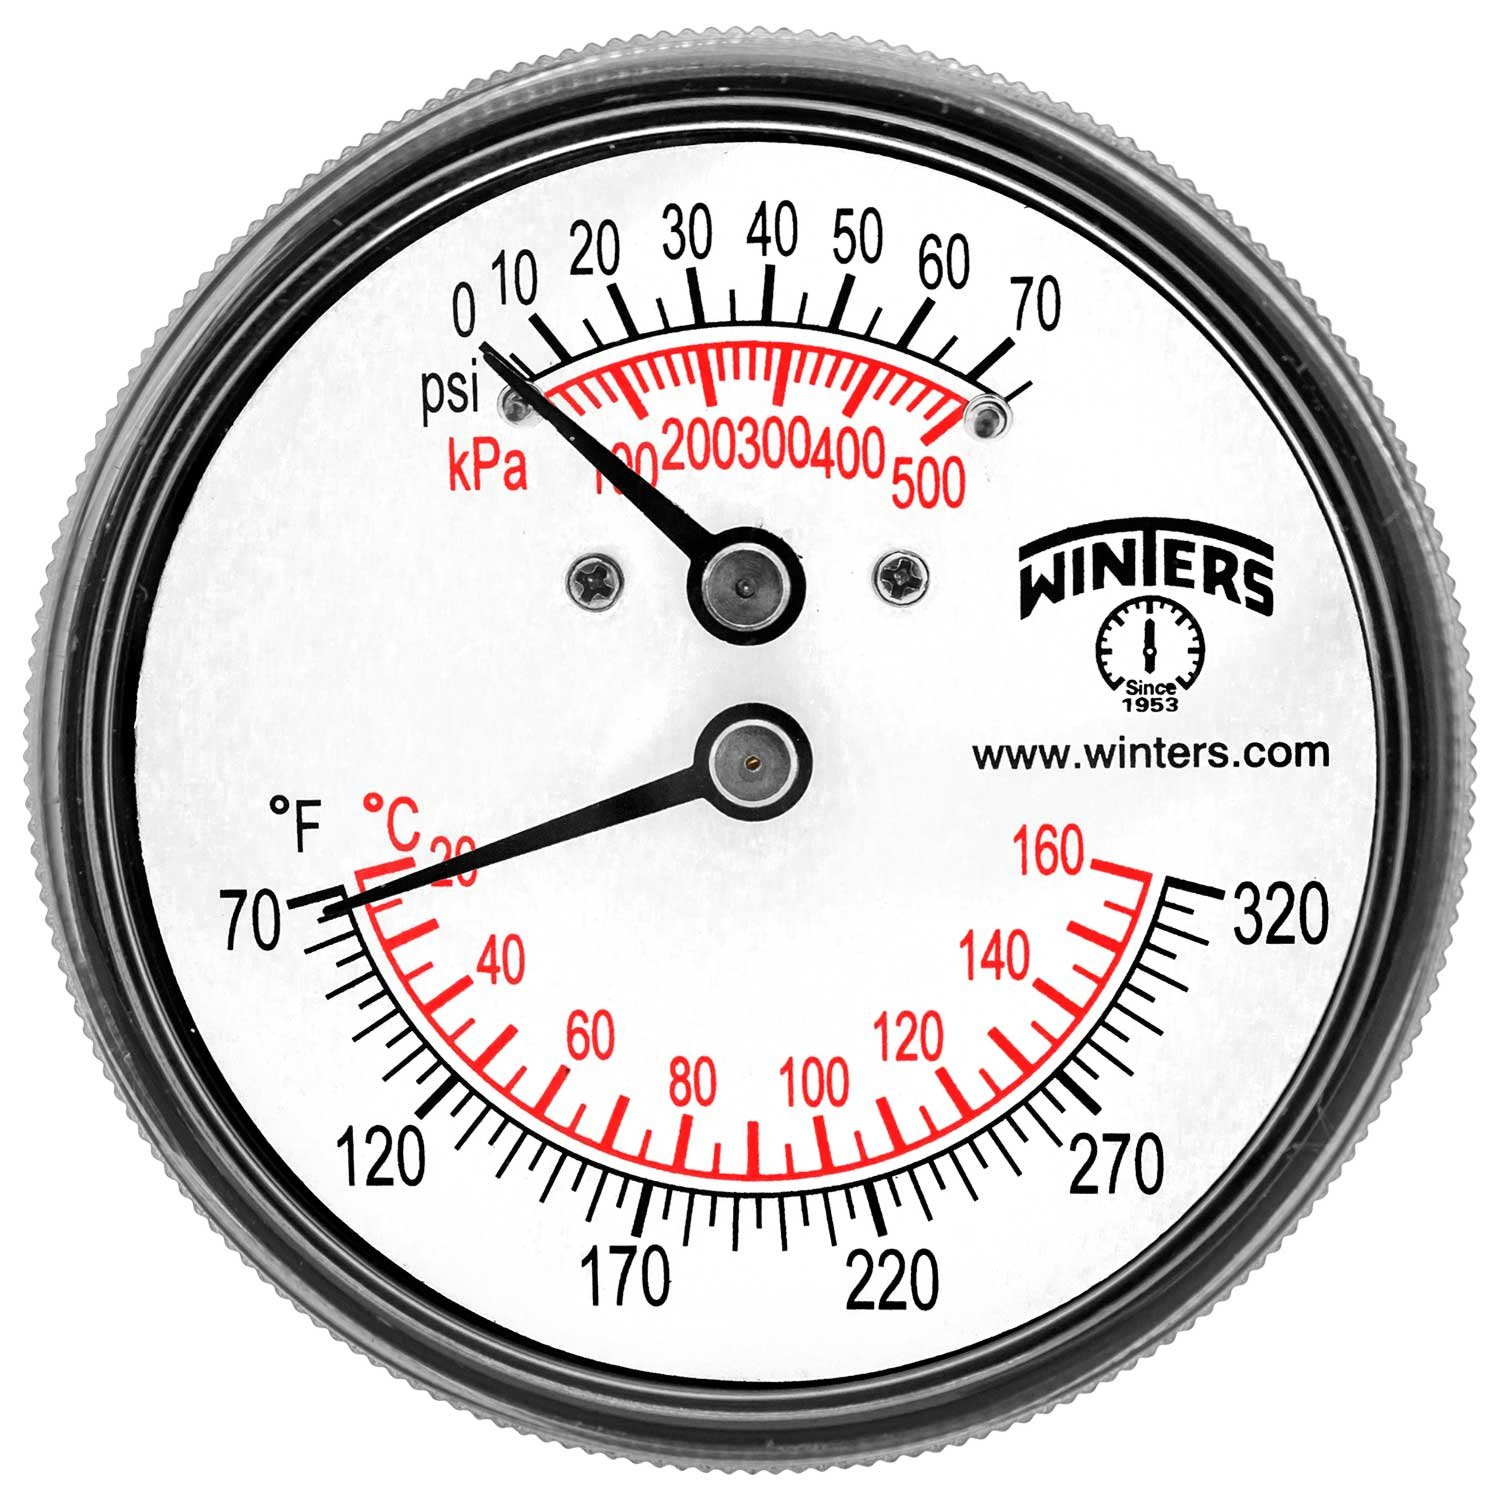 Winters TTD Series Steel Dual Scale Tridicator Thermometer with 2' Stem, 0-75psi/kpa, 2-1/2' Dial Display, Â ± 3-2-3% Accuracy, 1/4' NPT Back Mount, 70-320 Deg F/C 2-1/2 Dial Display 1/4 NPT Back Mount TTD404